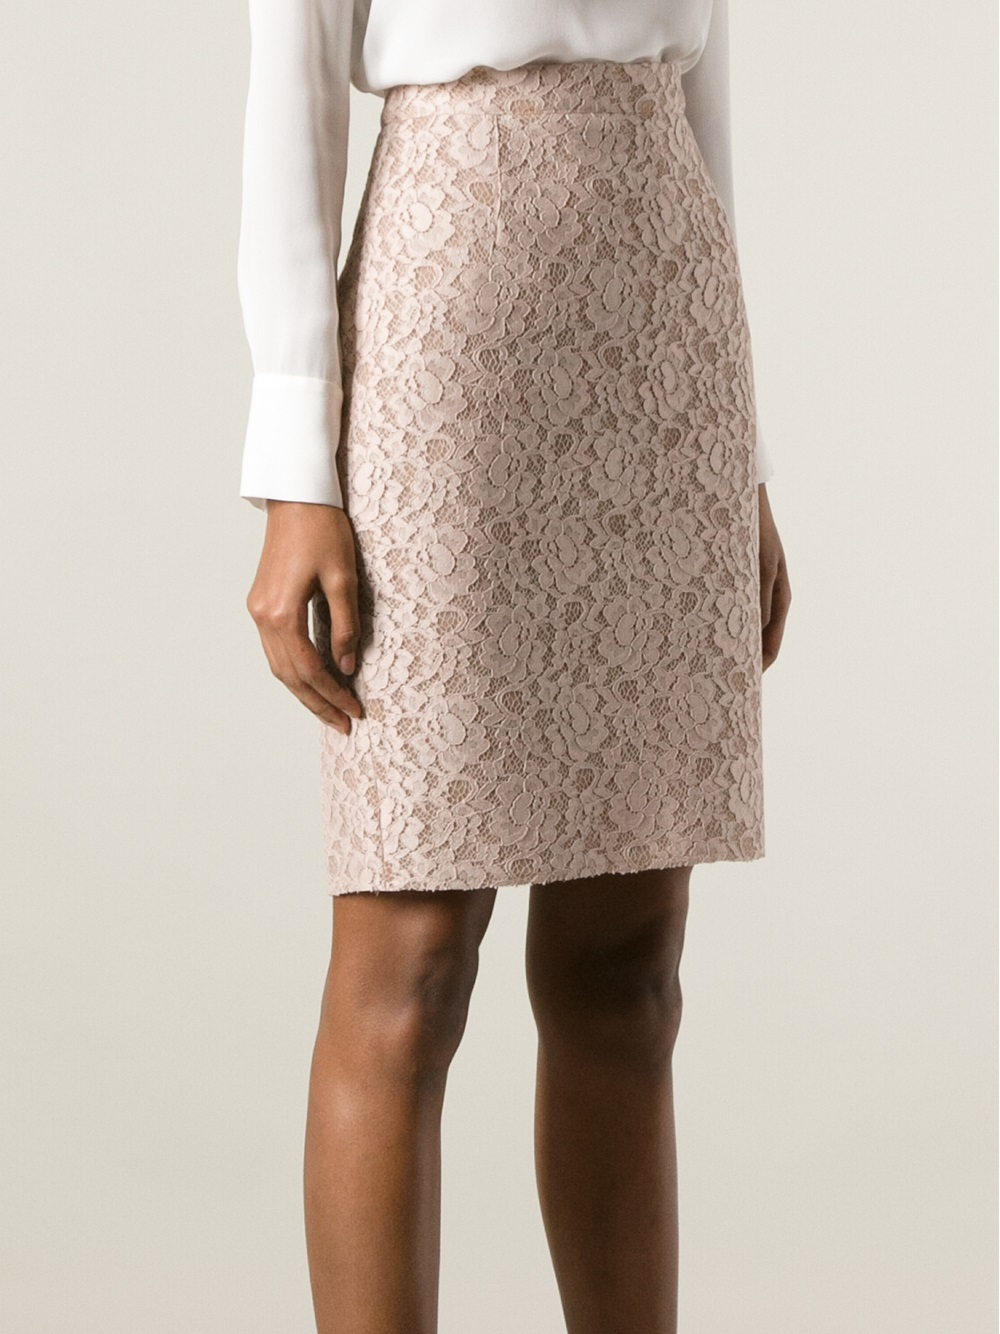 Lanvin Lace Pencil Skirt in Natural | Lyst